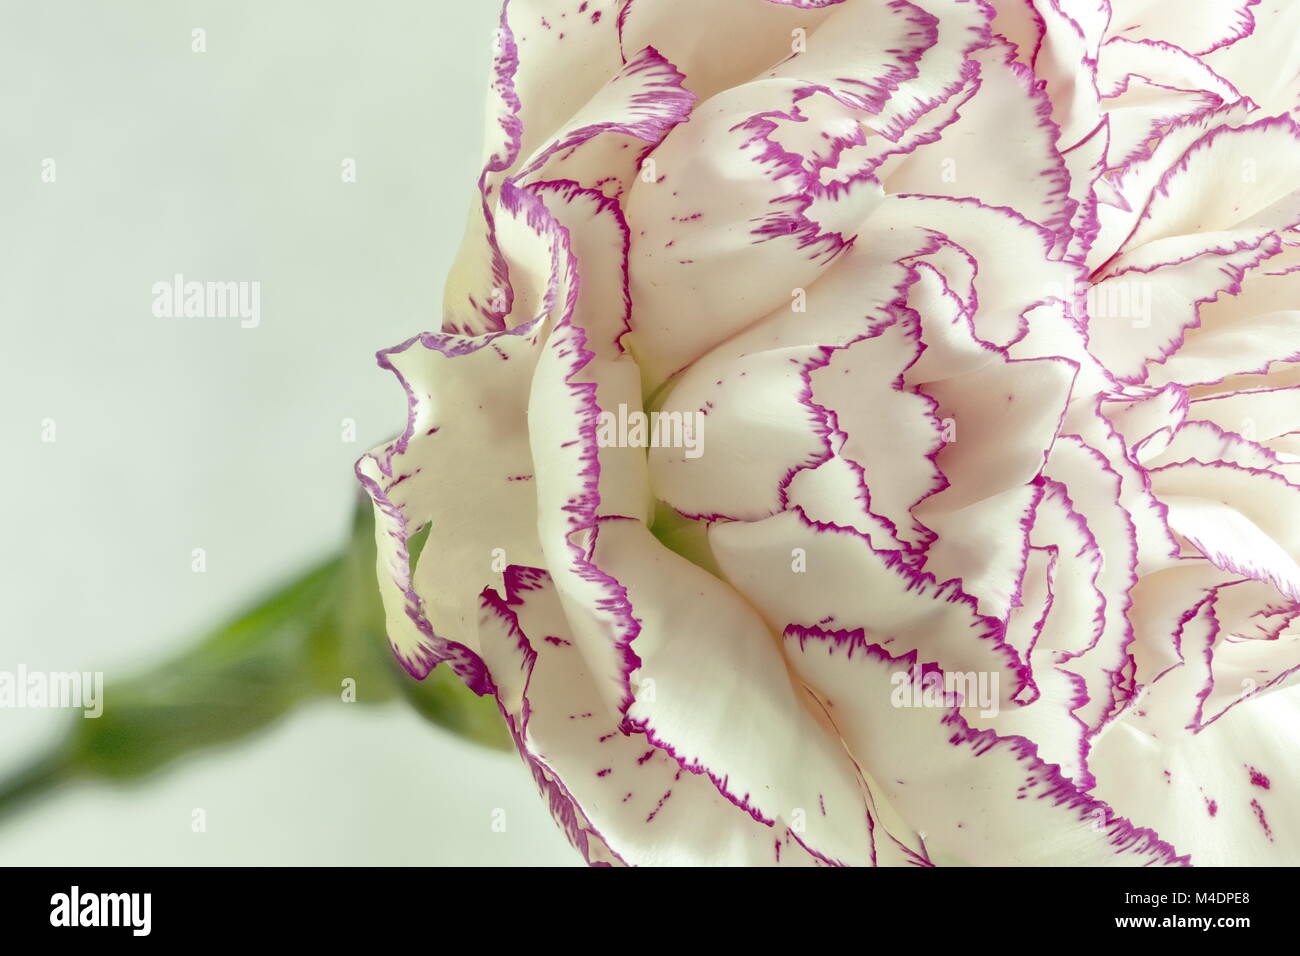 White carnation flower - Stock Image